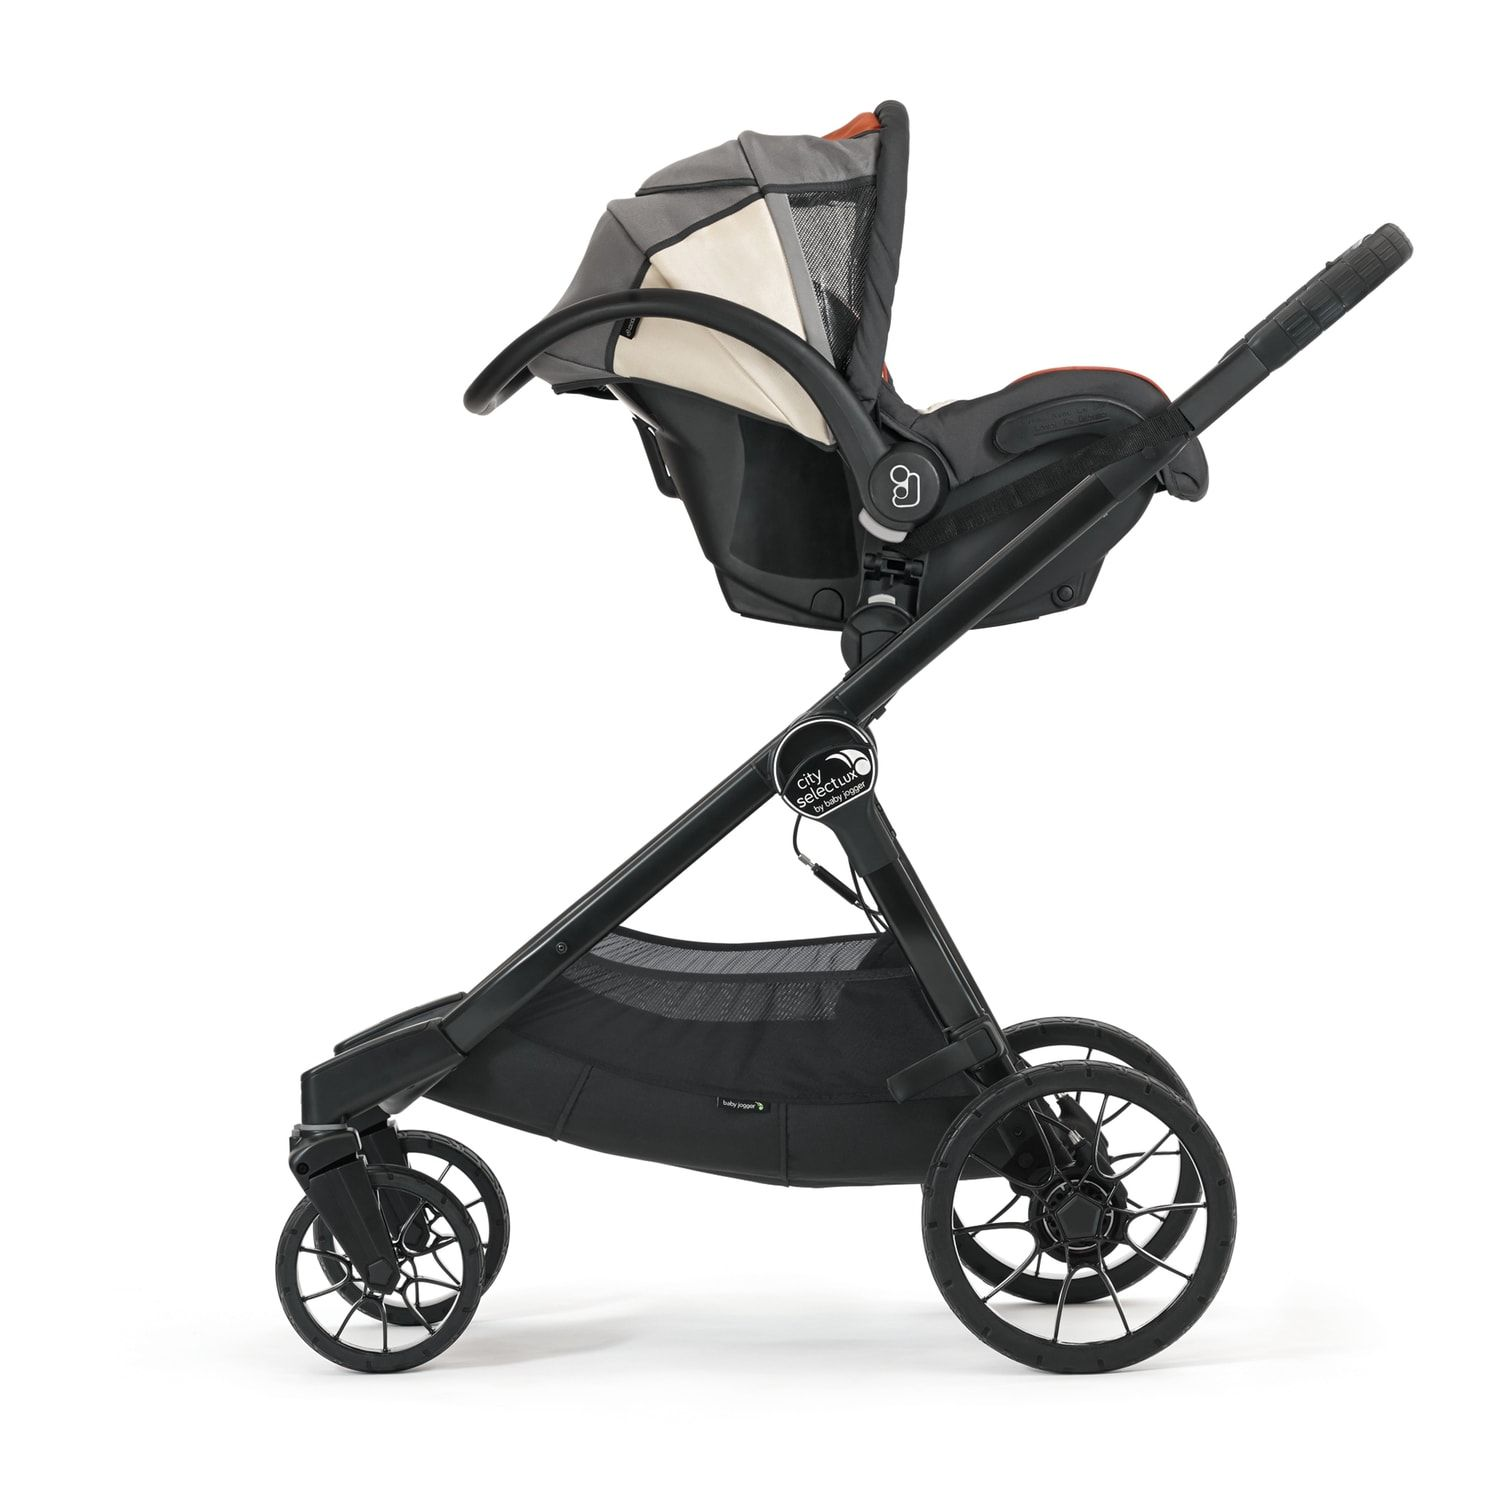 Baby Jogger City Select Lux Infant Car Seat Adapter Baby Jogger Car Seat Baby Jogger City Select Maxi Cosi Infant Car Seat